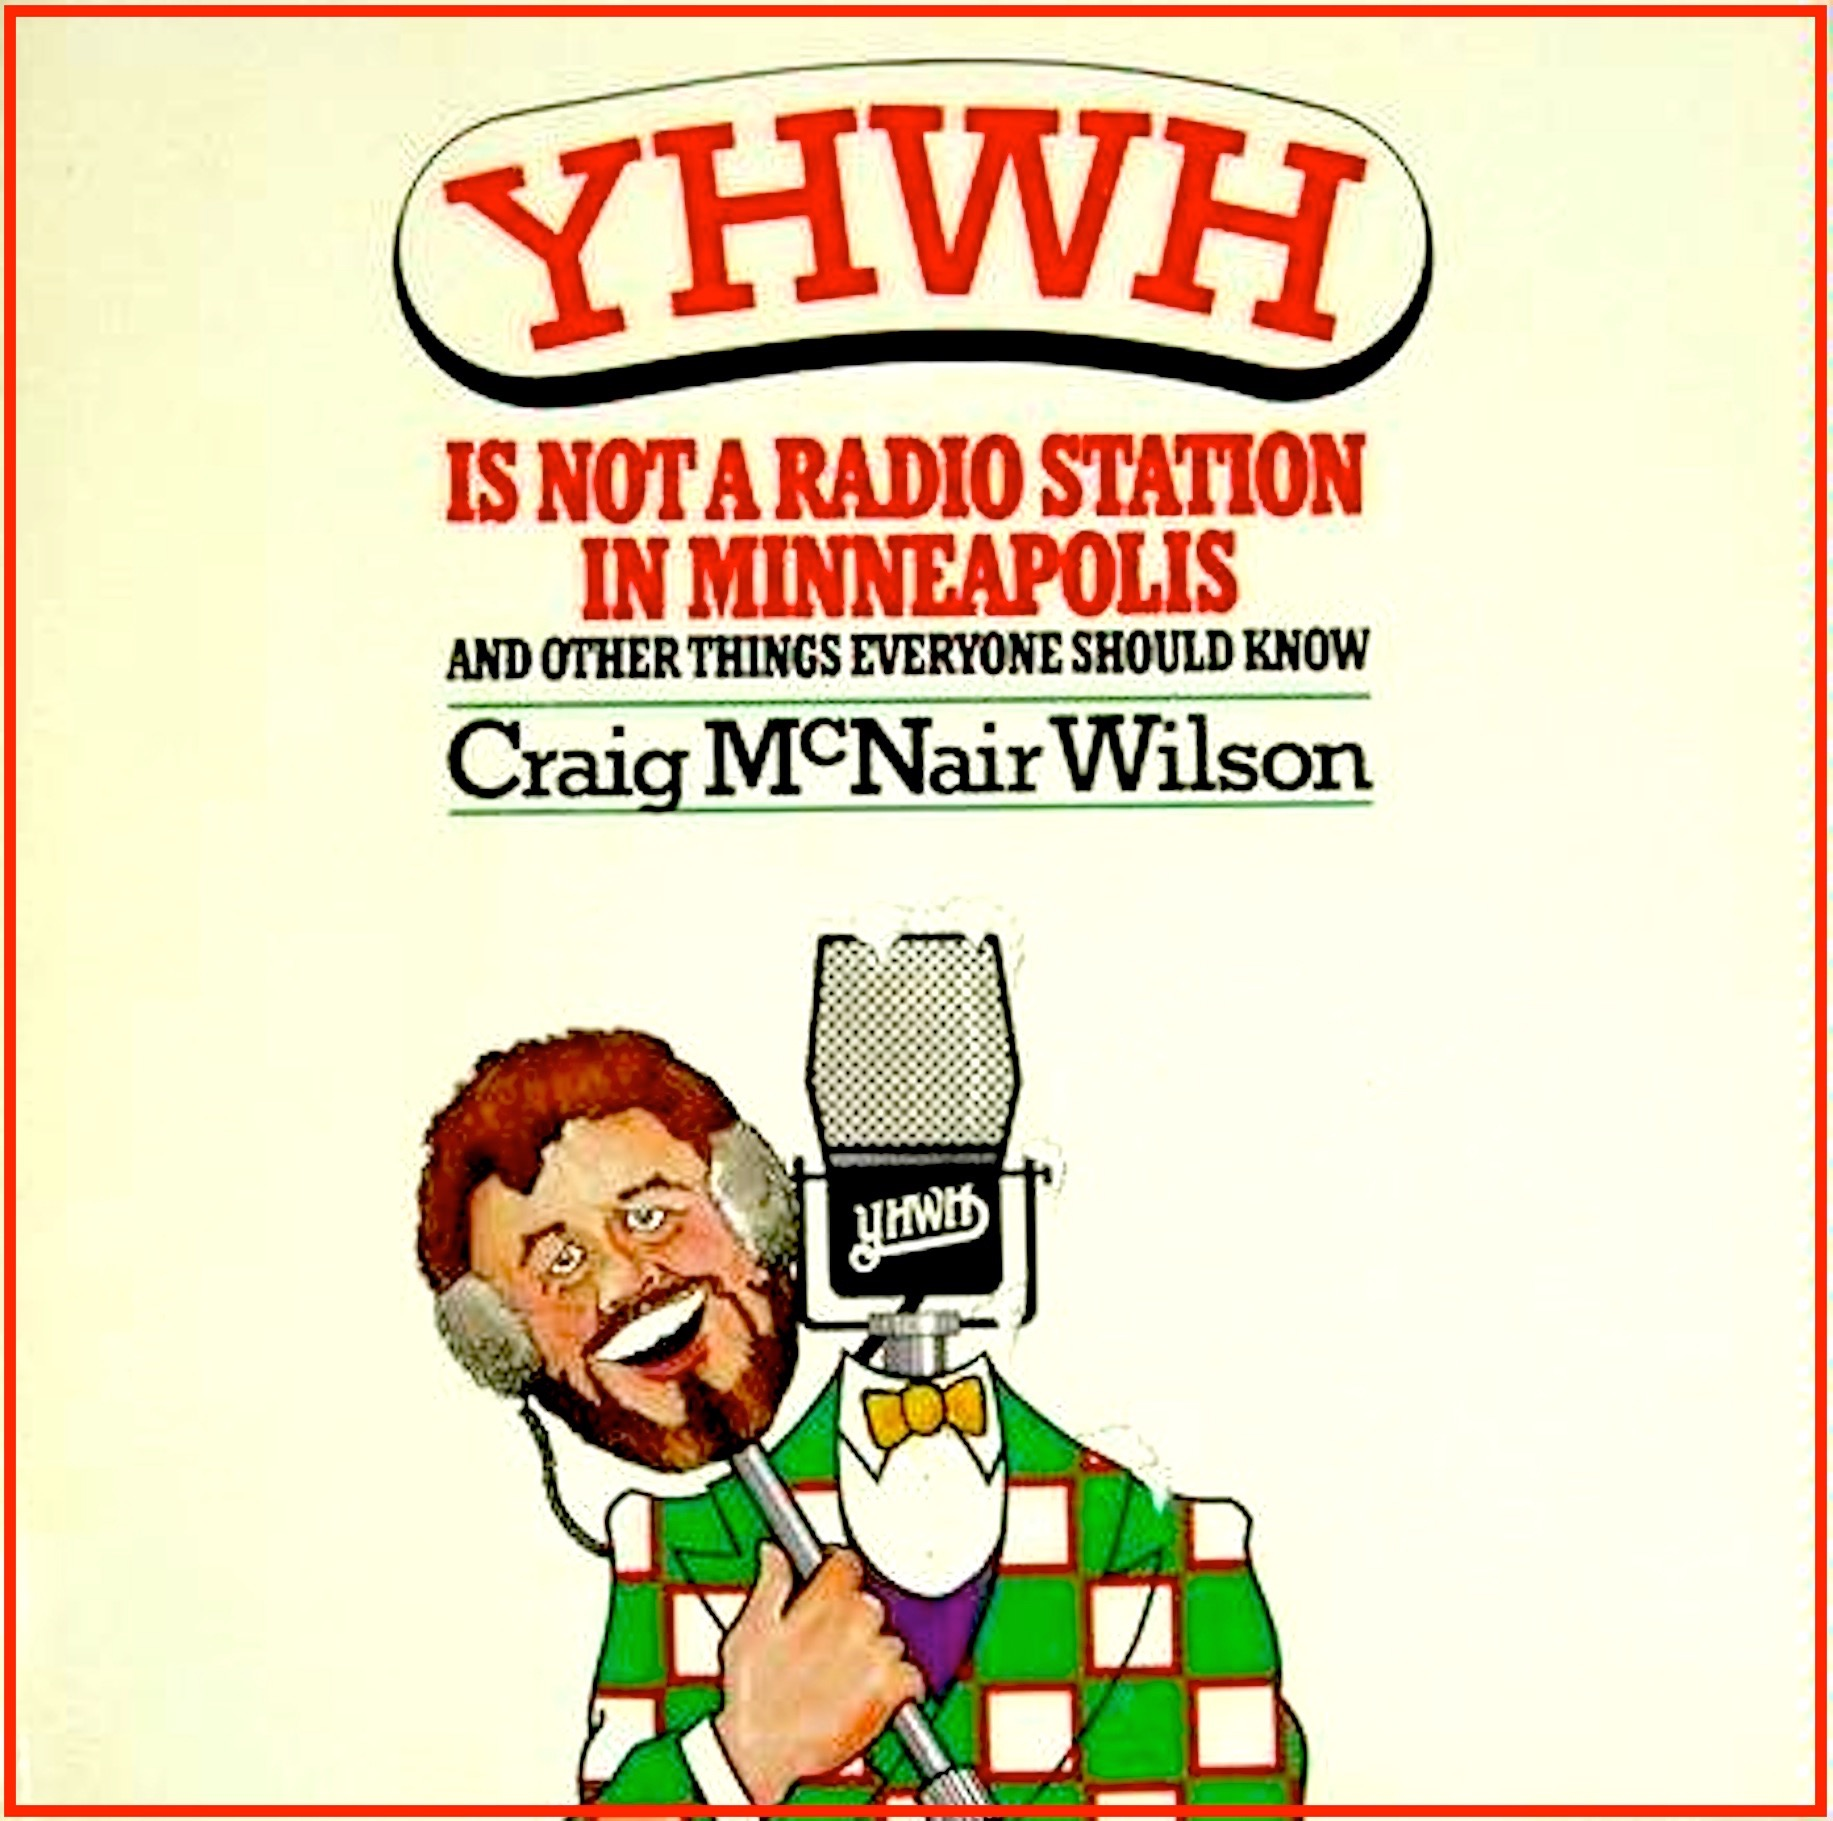 YHWH Is Not A Radio Station In Minneapolis (1983) - Copy